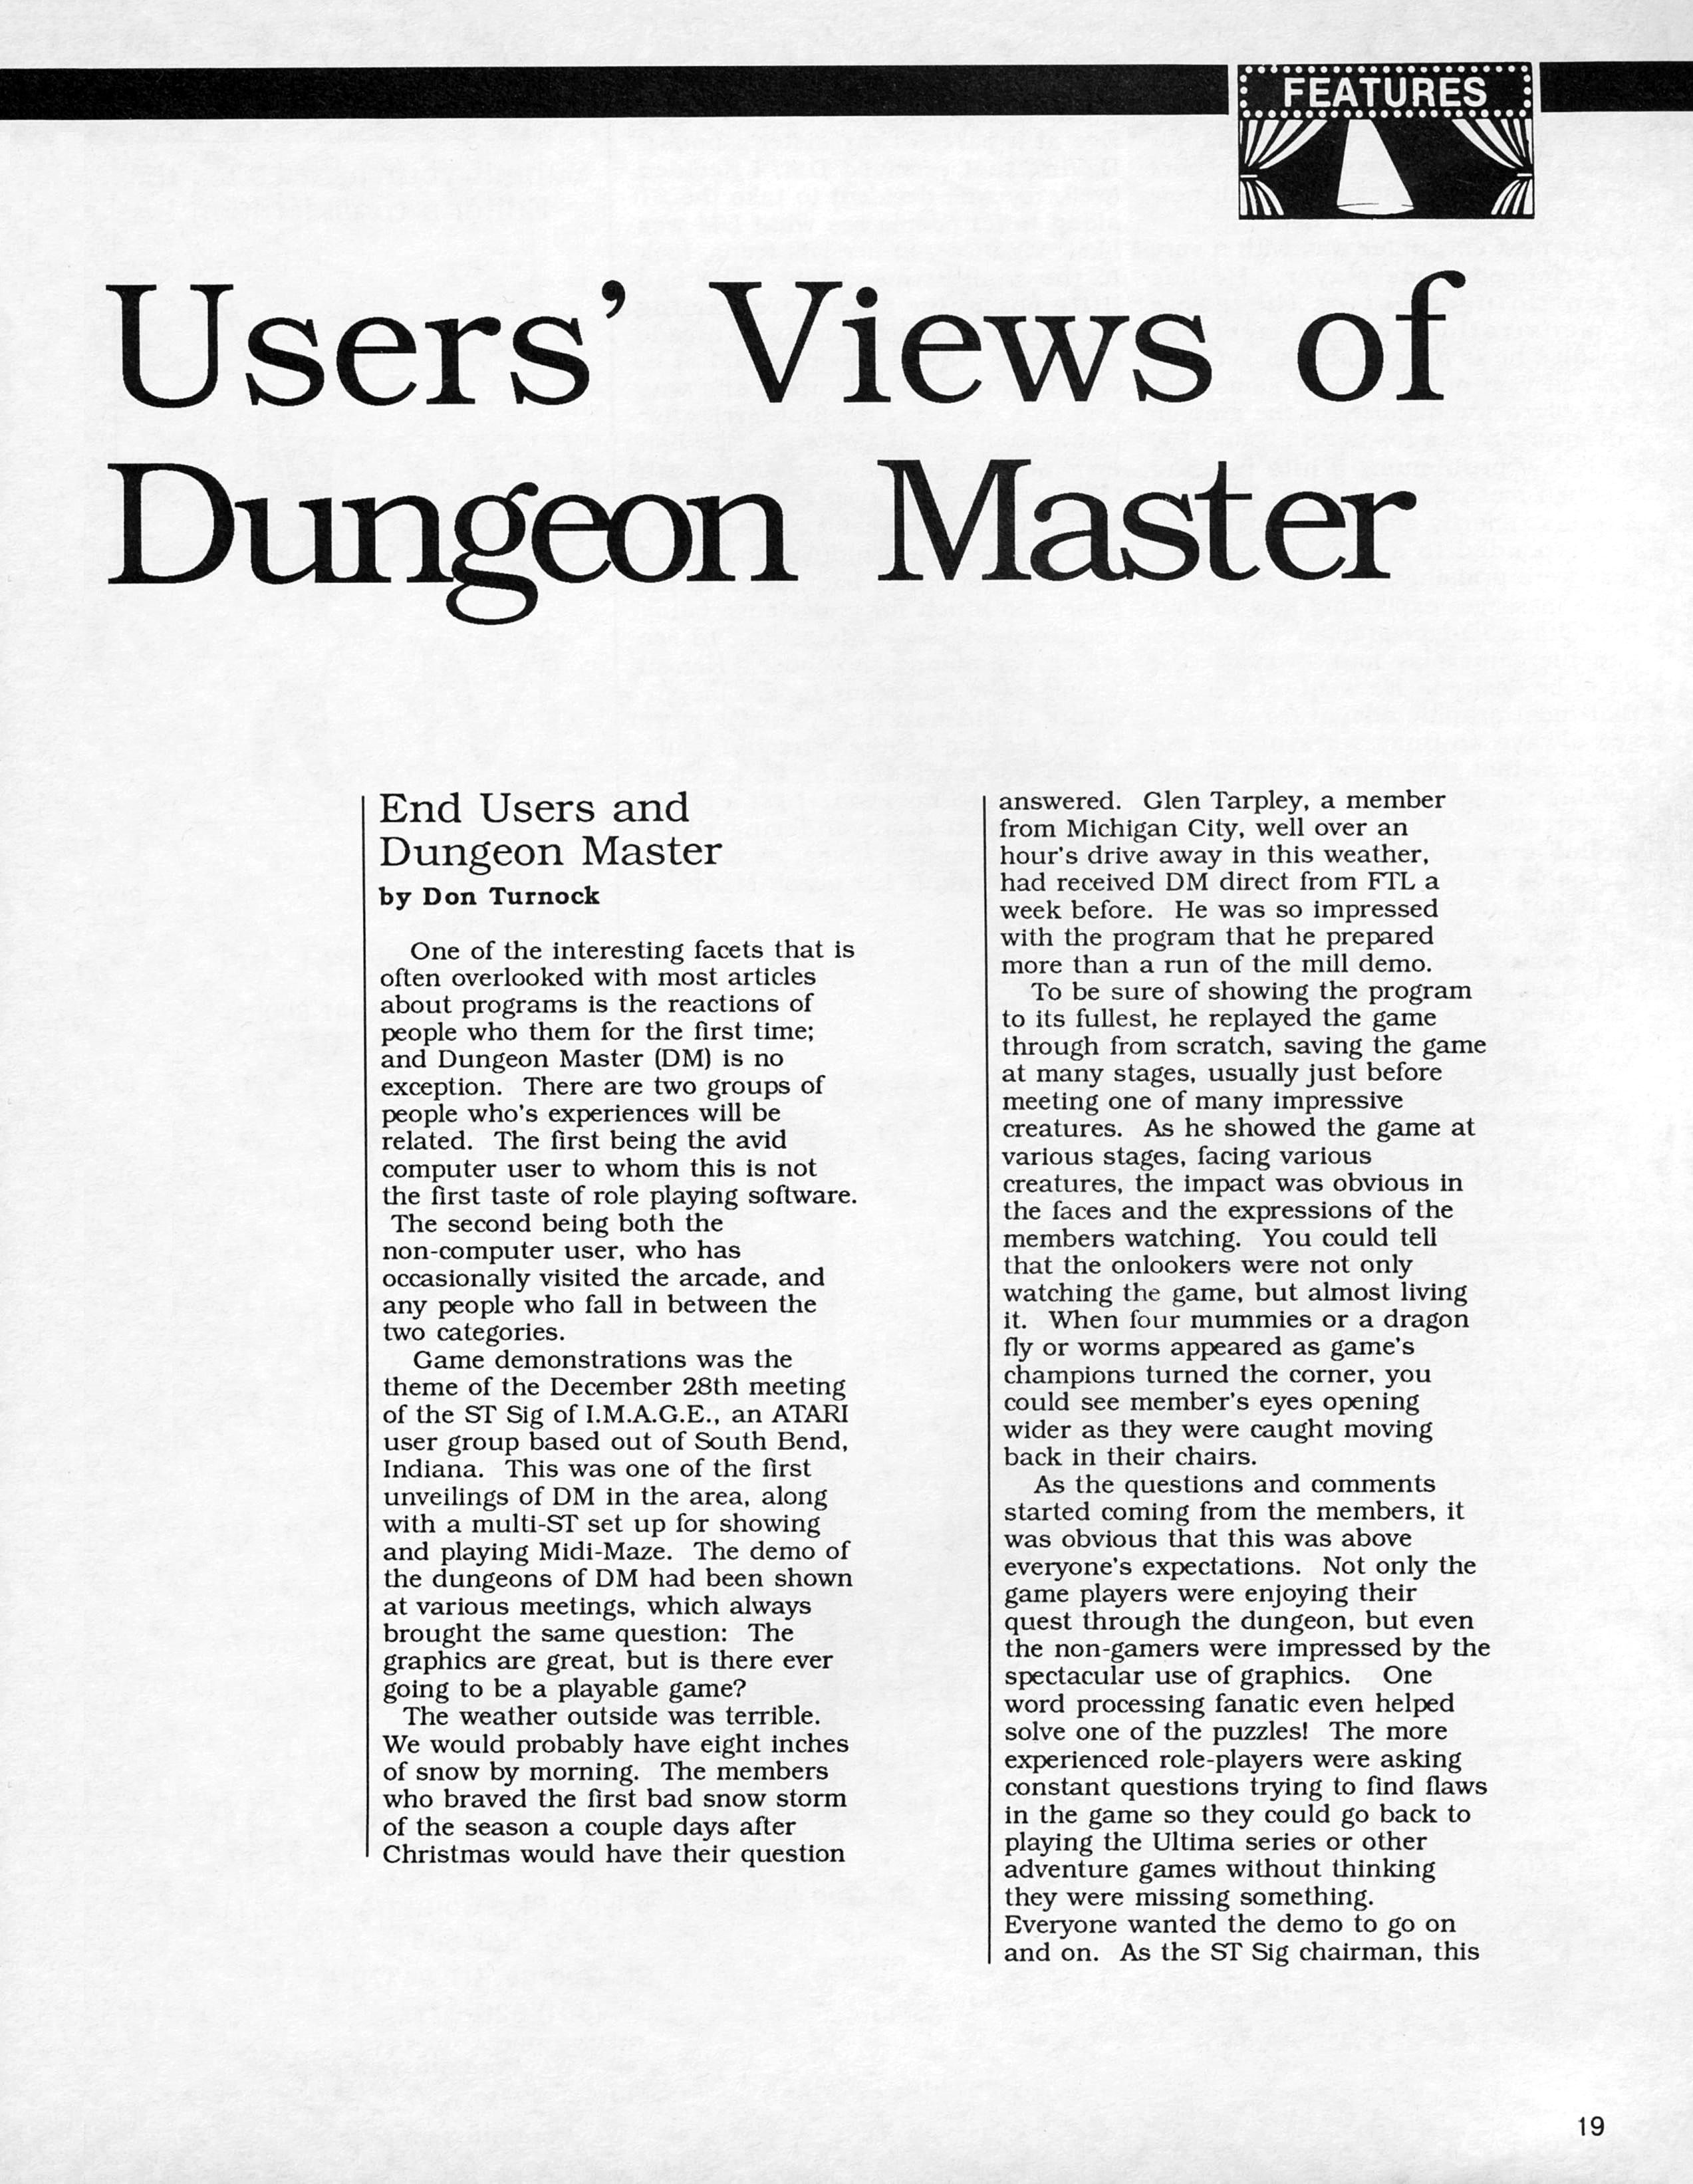 Dungeon Master for Atari ST Review published in American magazine 'ST X-PRESS', Vol 2 No 2 March 1988, Page 19